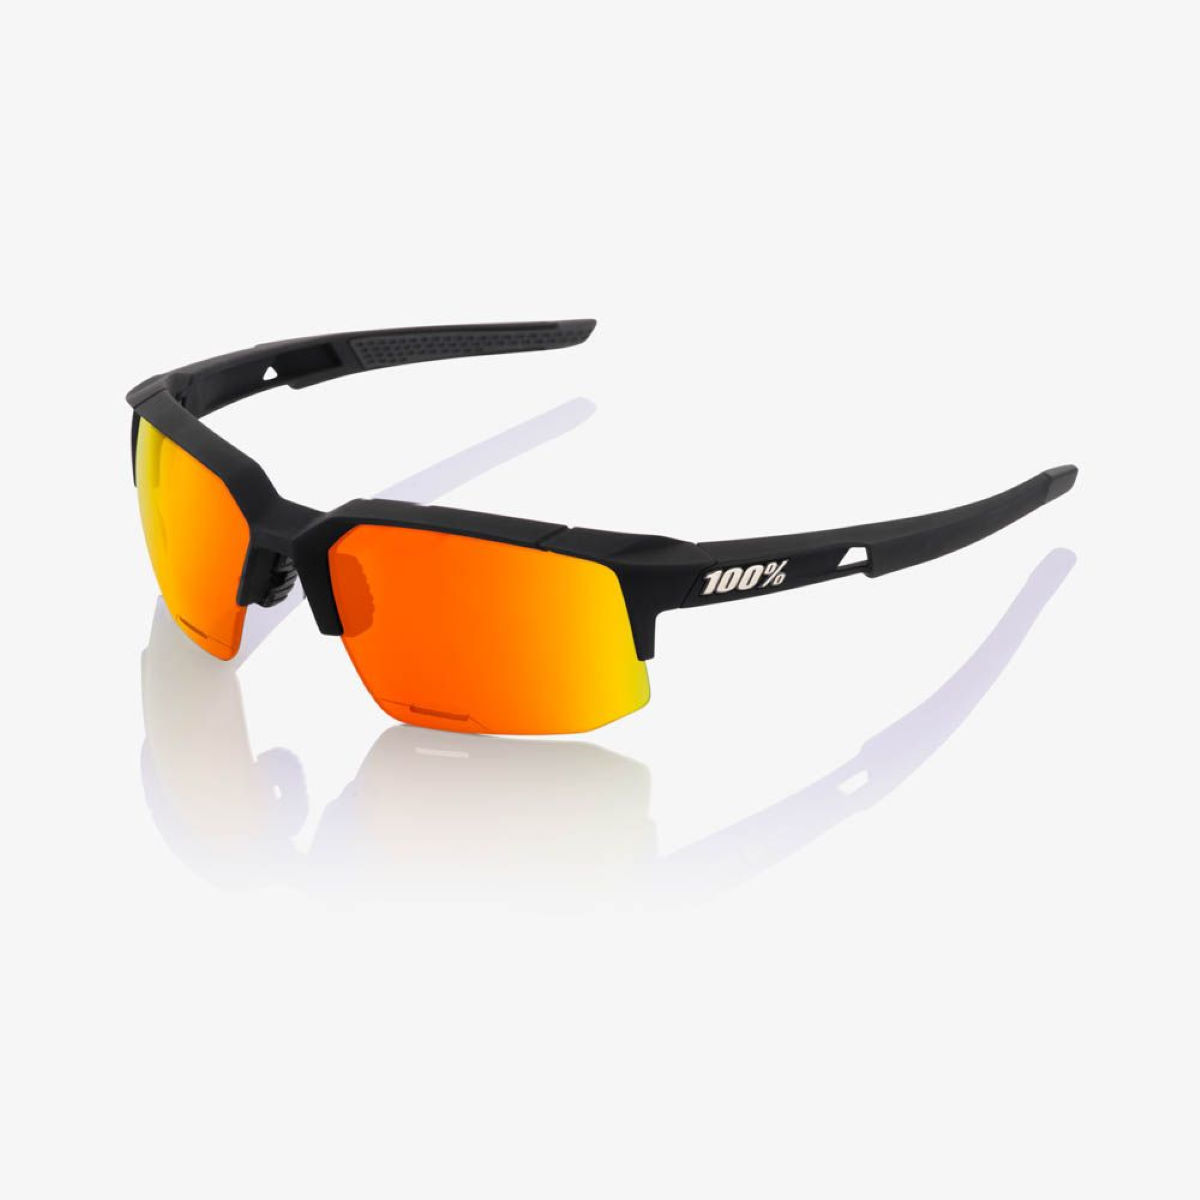 100% Speedcoupe - Hiper Red Multilayer Mirror Lens - One Size